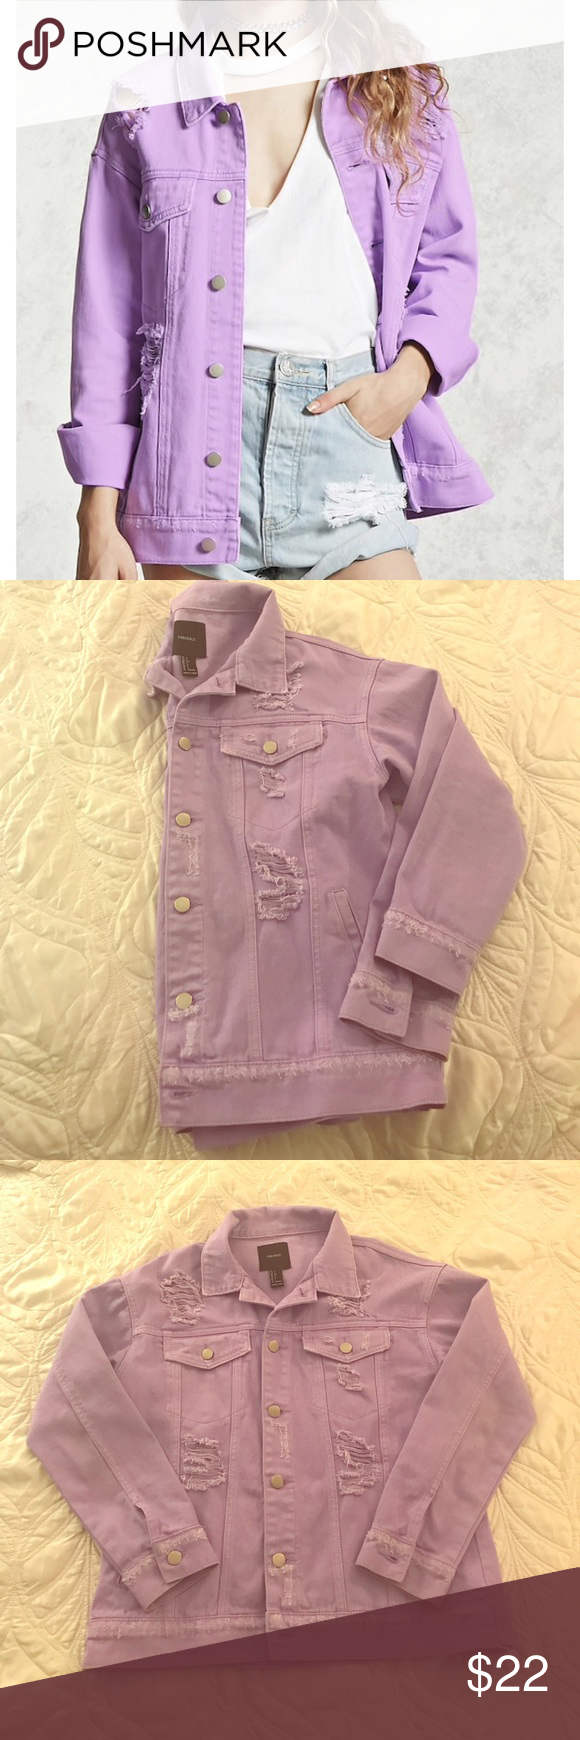 Forever 21 Distressed Denim Jacket In Lavender Who Else Adores Lavender This Jackets Is A Beautiful Su Distressed Denim Jacket Denim Jacket Sweater Fashion [ 1740 x 580 Pixel ]